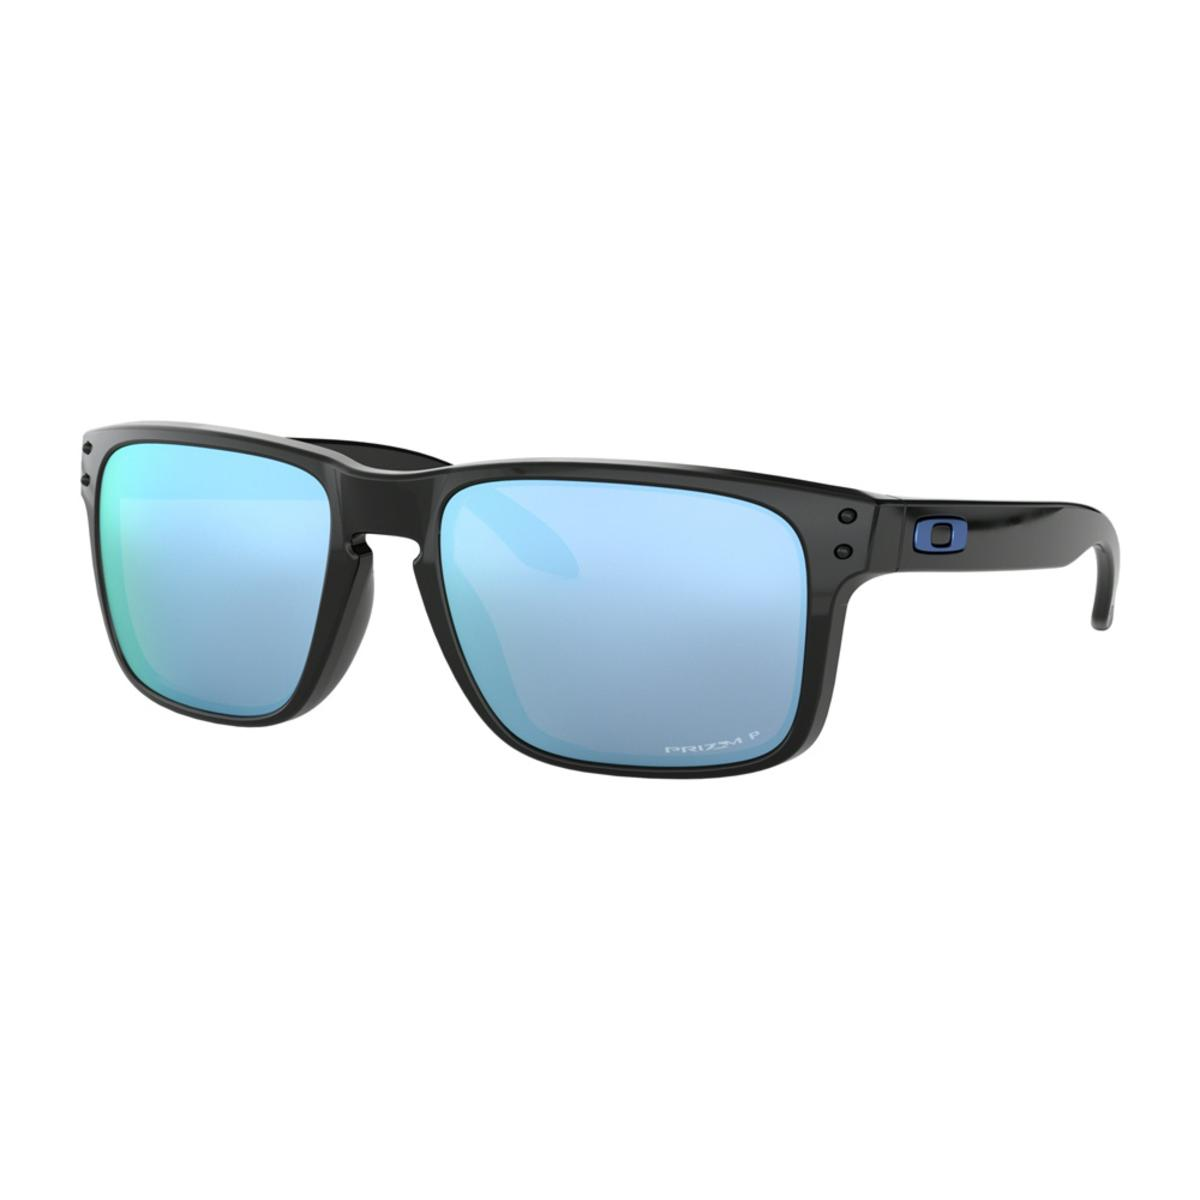 c7307103d2 Oakley Holbrook Polished Black Sunglasses w Prizm Deep Water Polarized -  The Warming Store